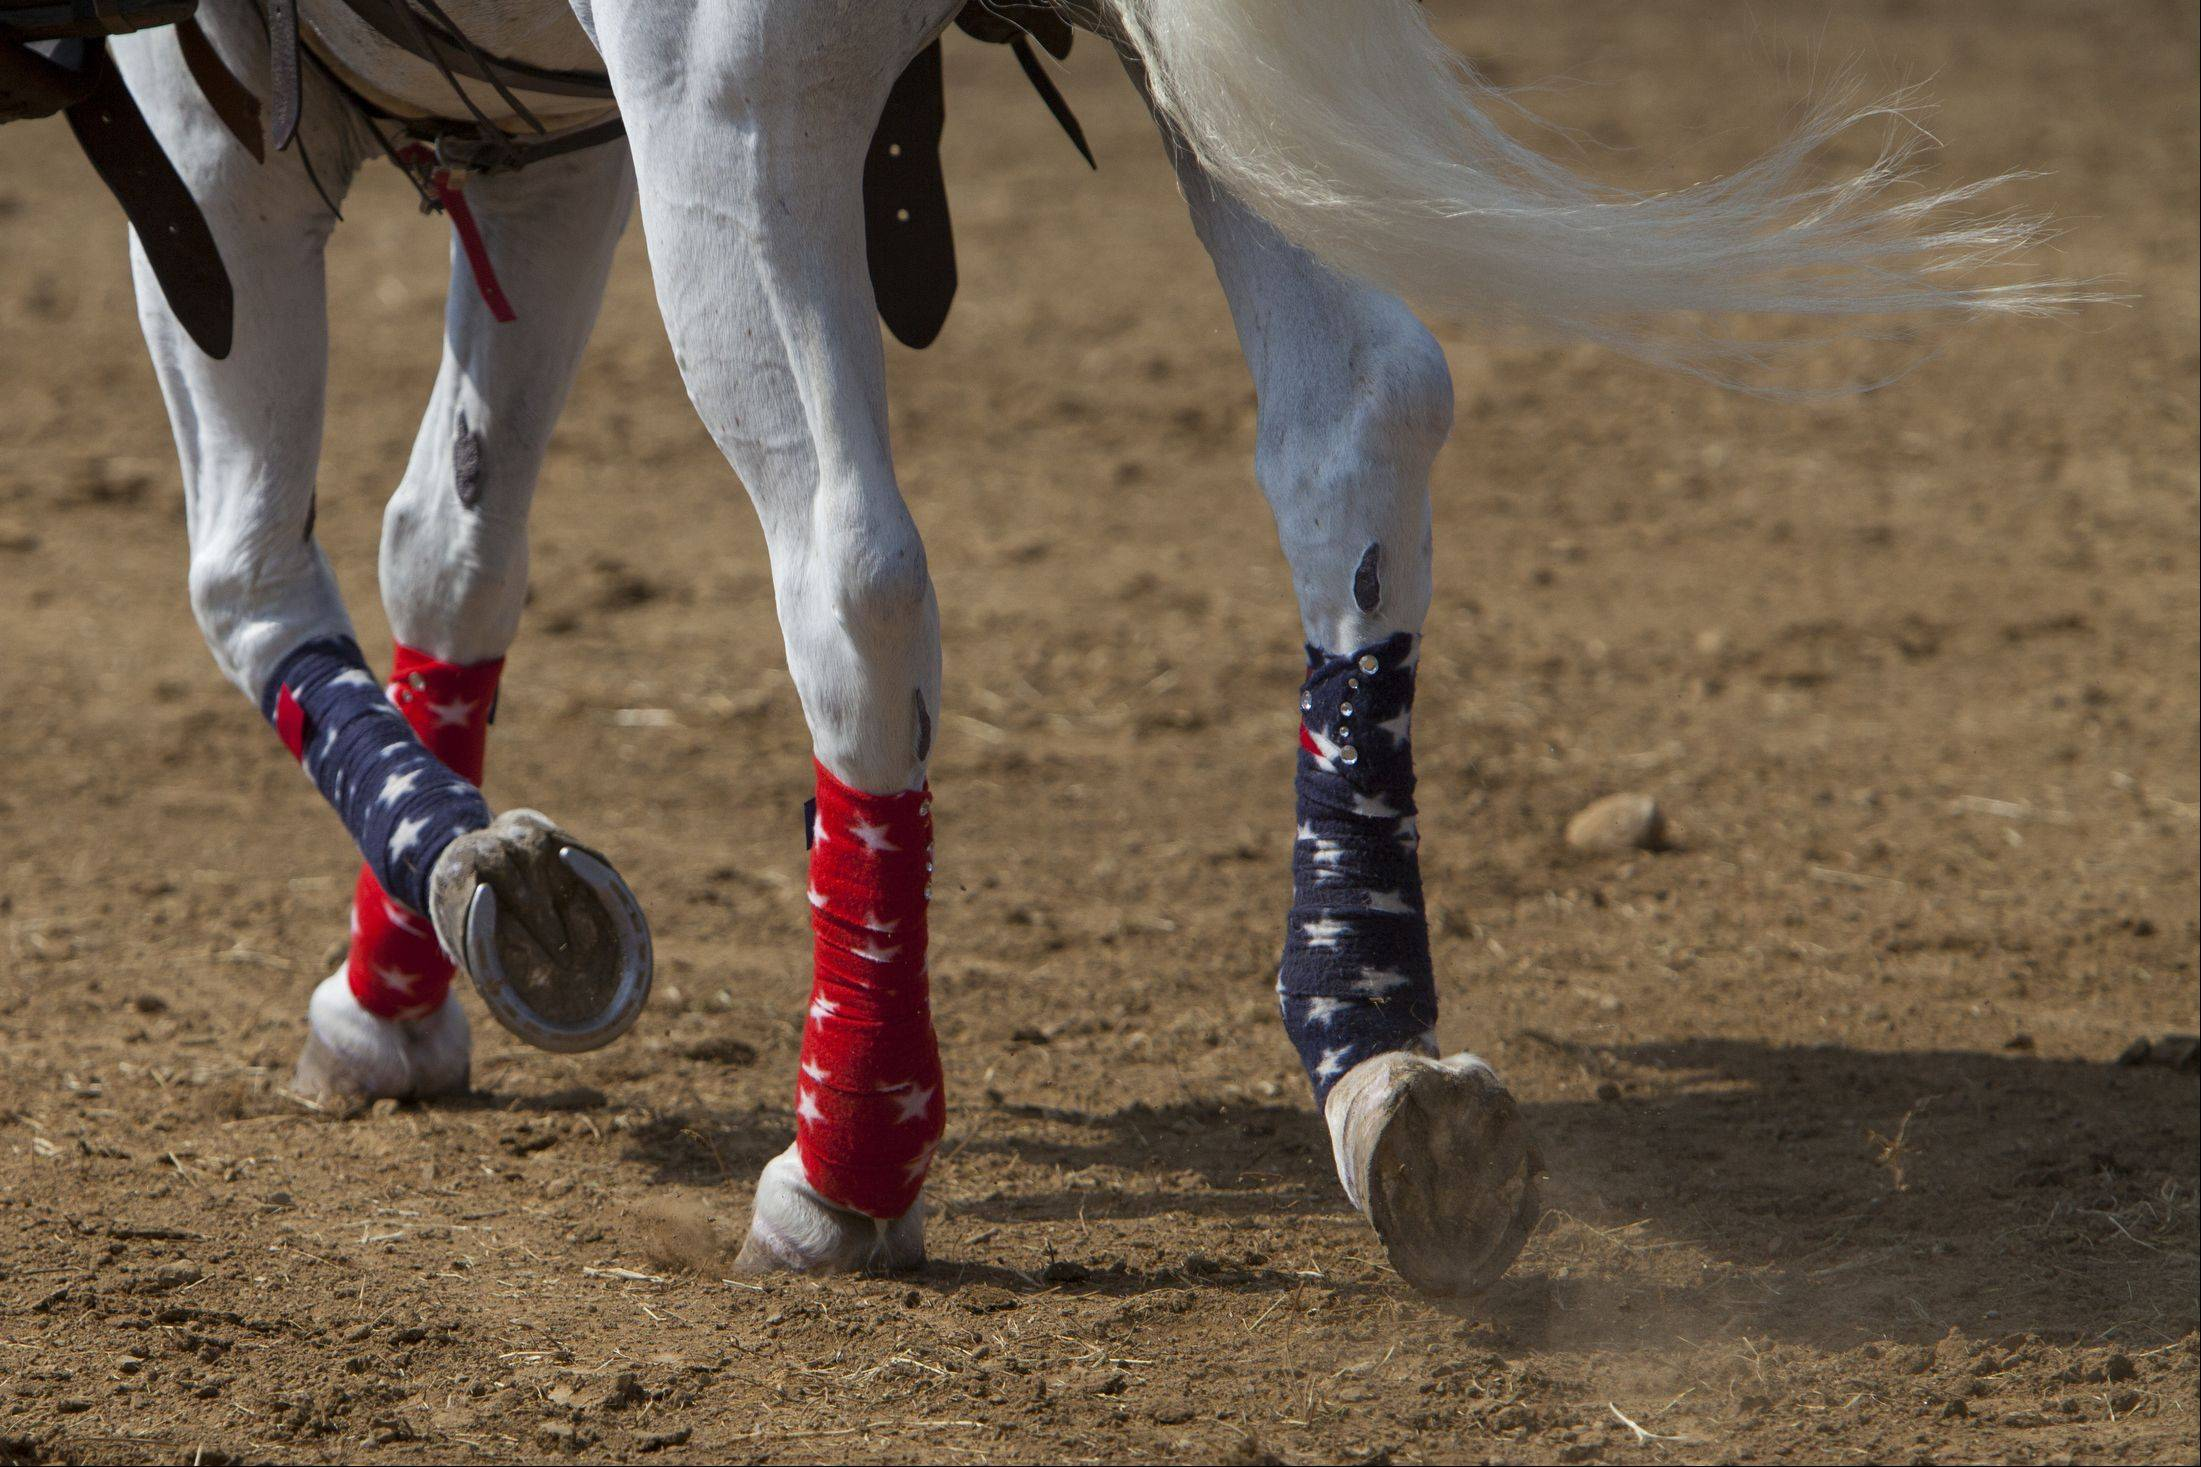 The American horse had decorated hoofs Sunday at the 49th IPRA Championship Rodeo in Wauconda.